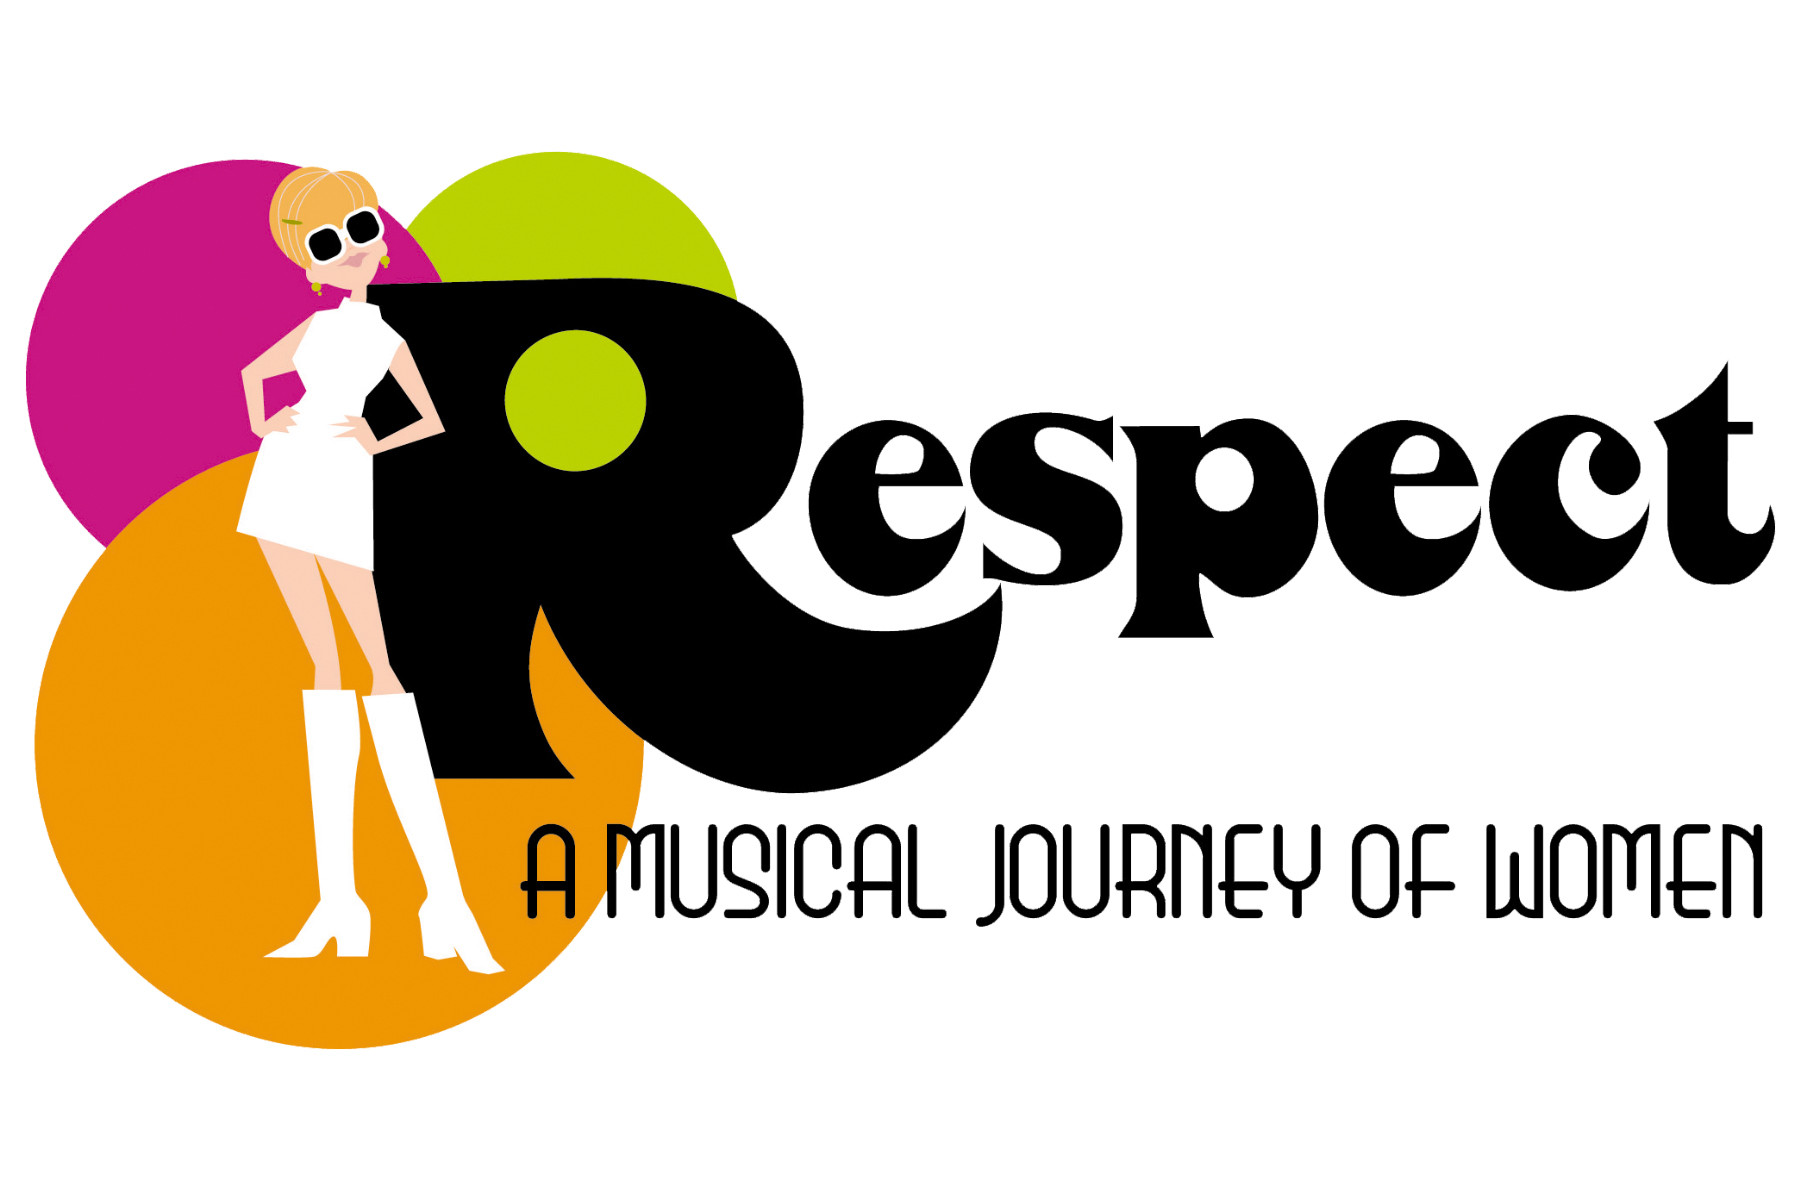 Theatre: Respect - A Musical Journey of Women